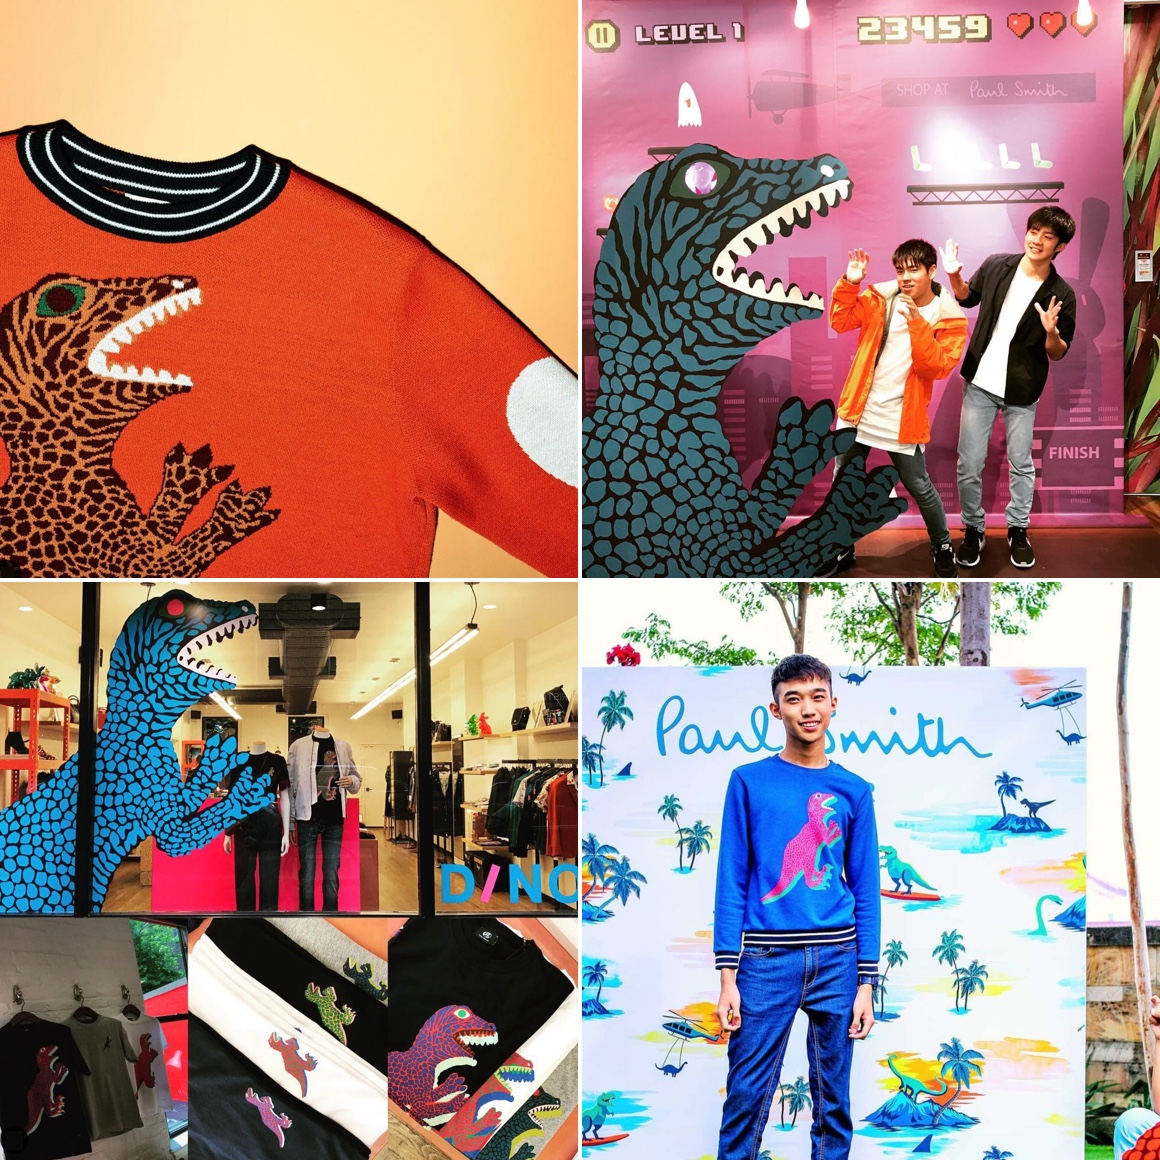 The Paul Smith Dino Jumper fashion range and game proved popular in Japan